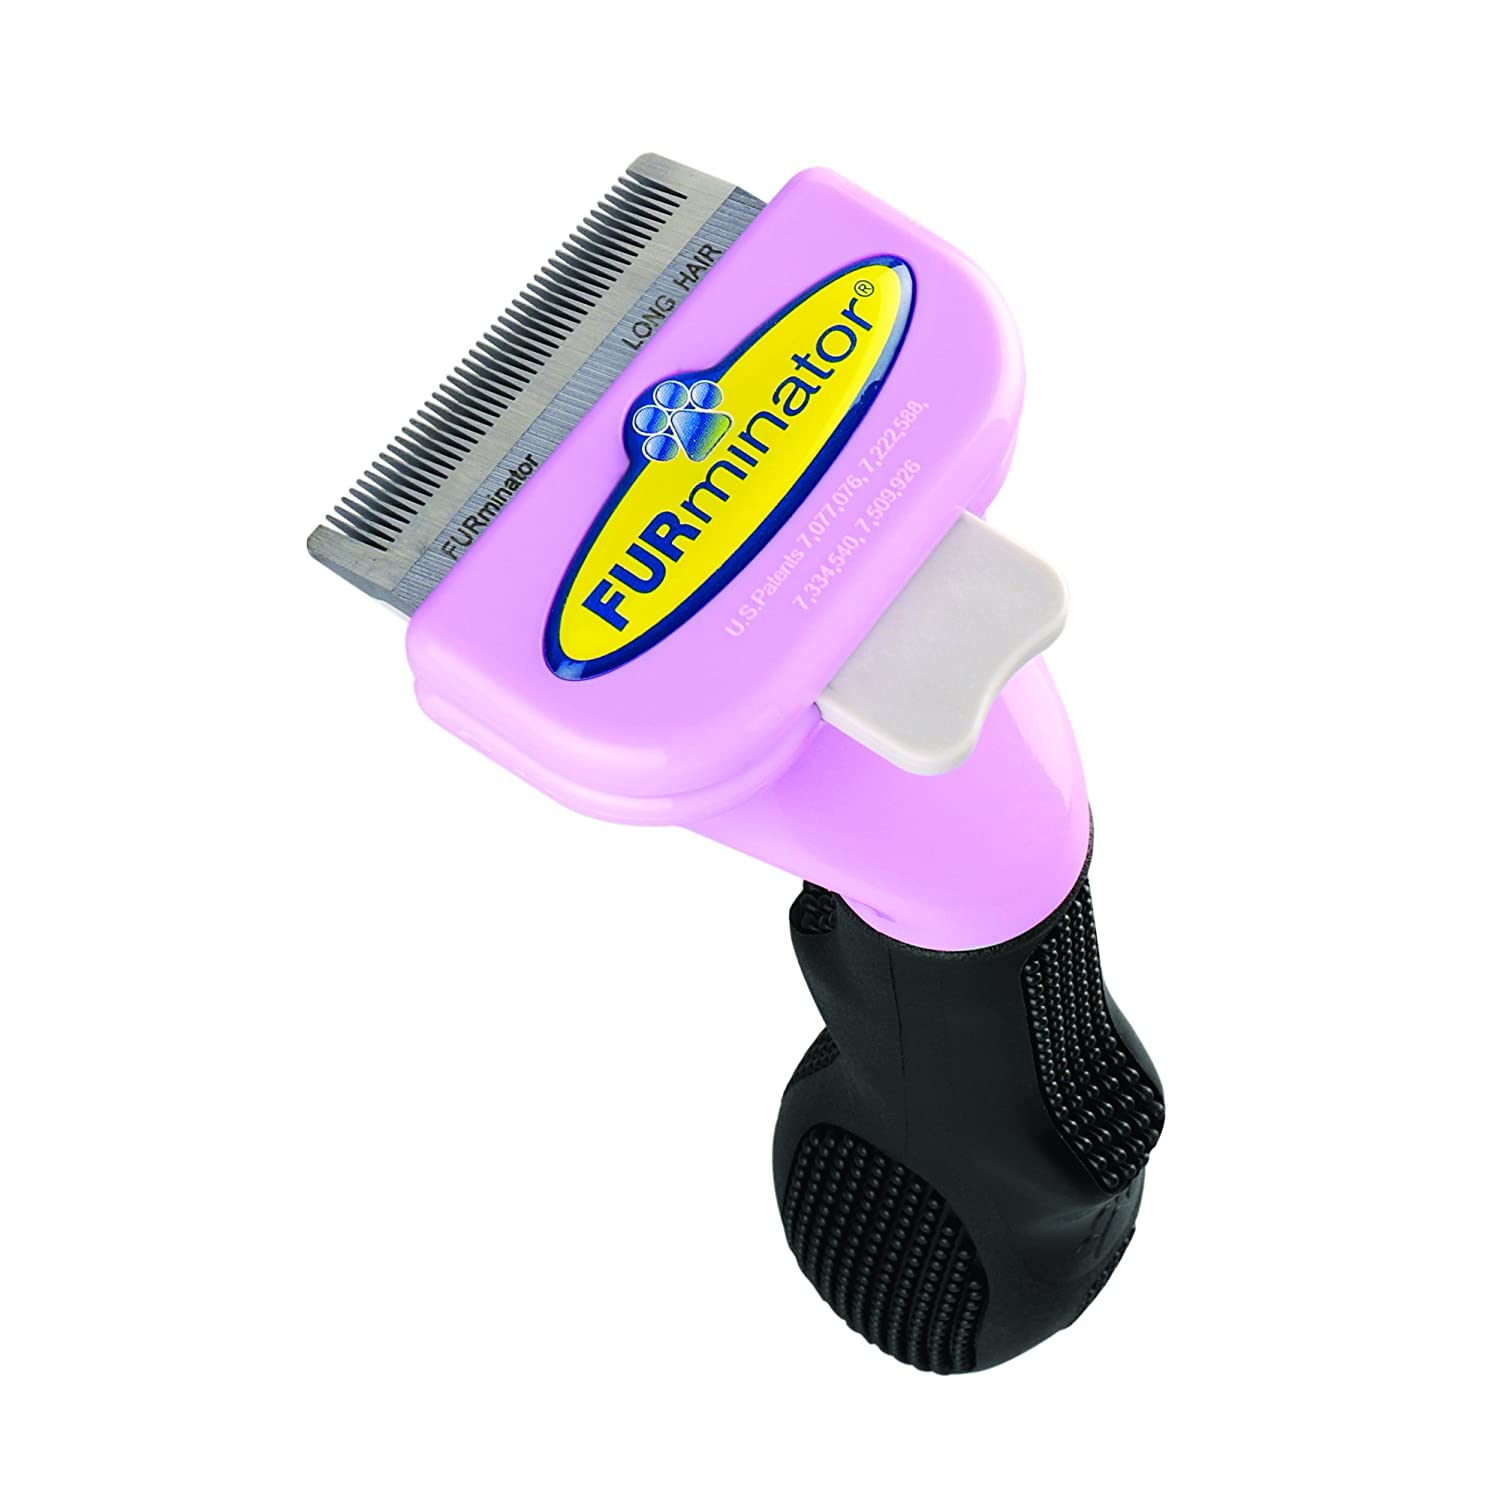 Furminator herramienta deshedding para gatos: Amazon.es: Productos ...